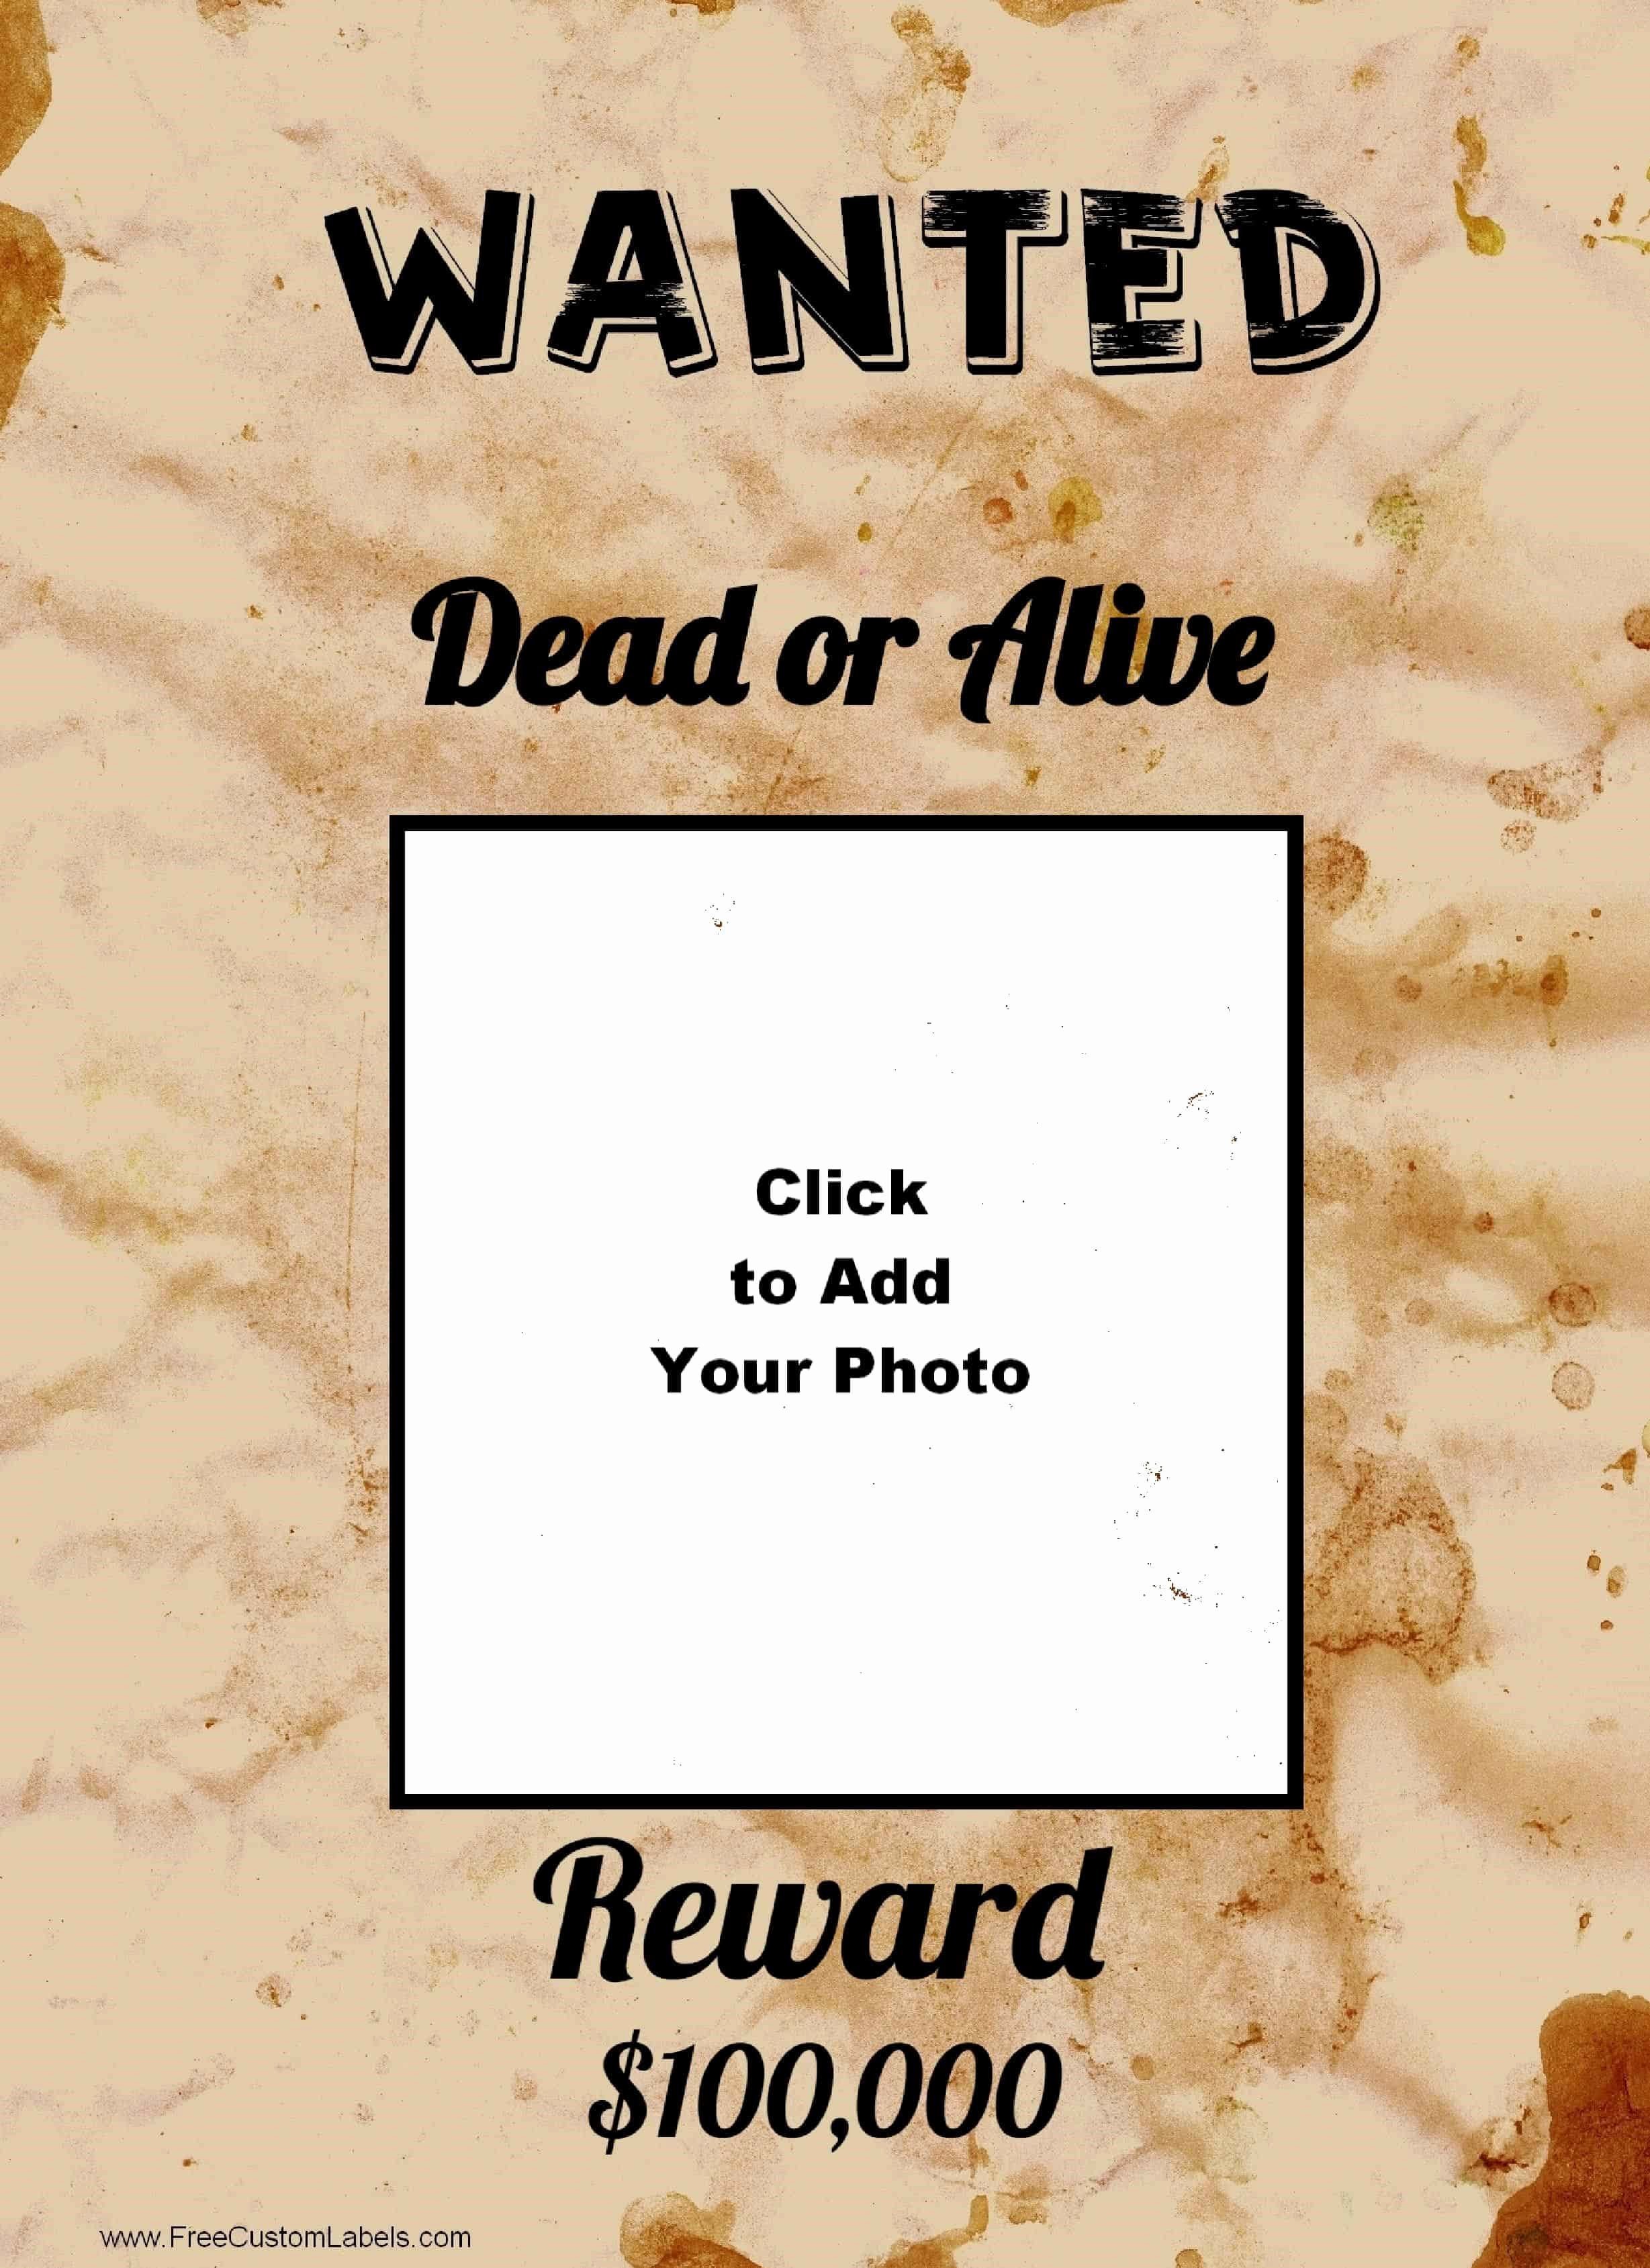 Wanted Poster Template Pdf Best Of Free Wanted Poster Maker